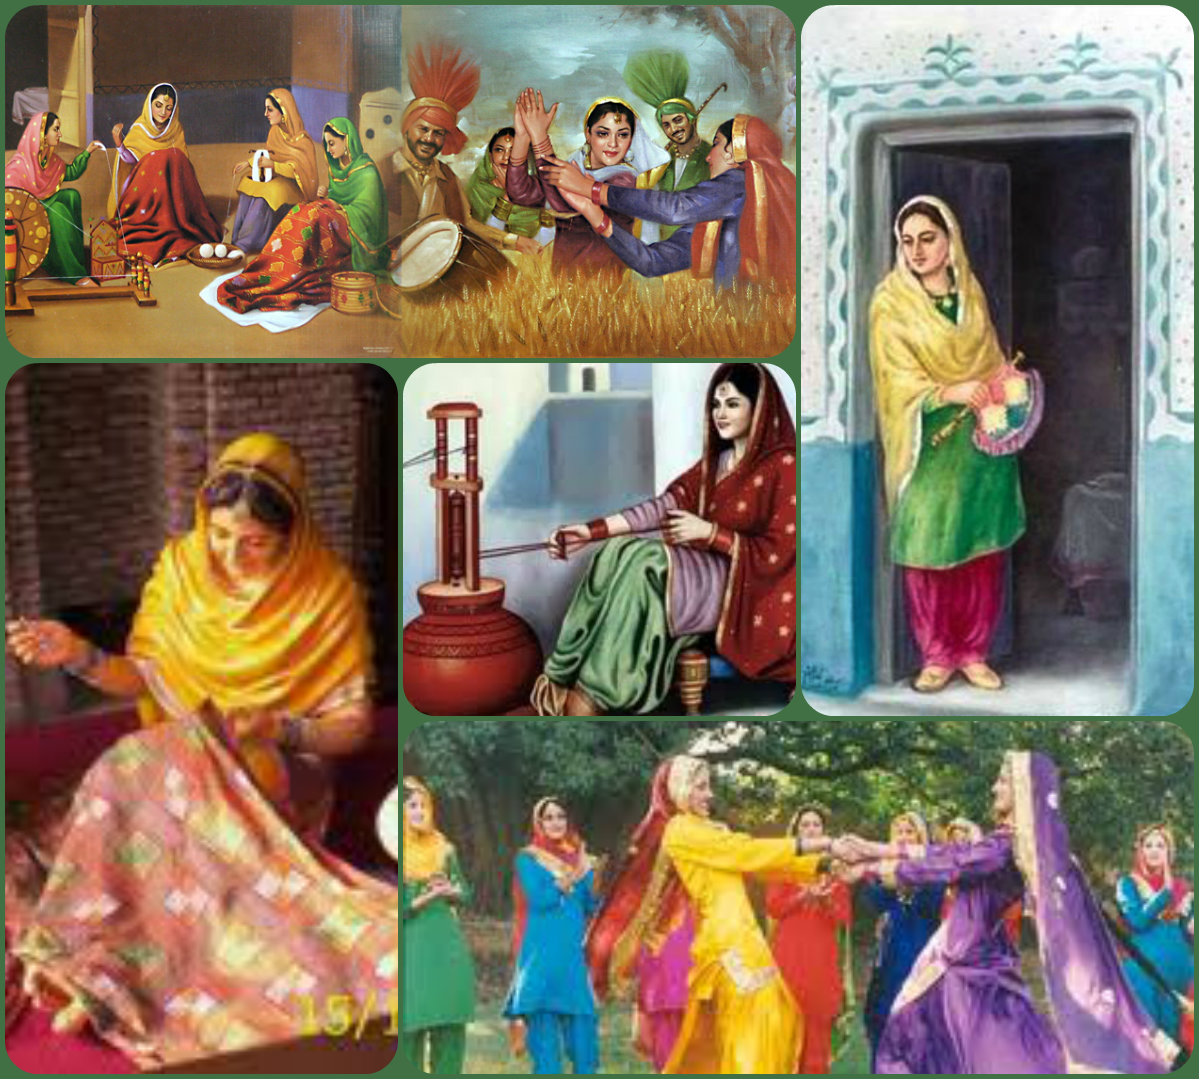 Punjabi Culture Wallpapers Punjabi culture is the culture 1200x1080